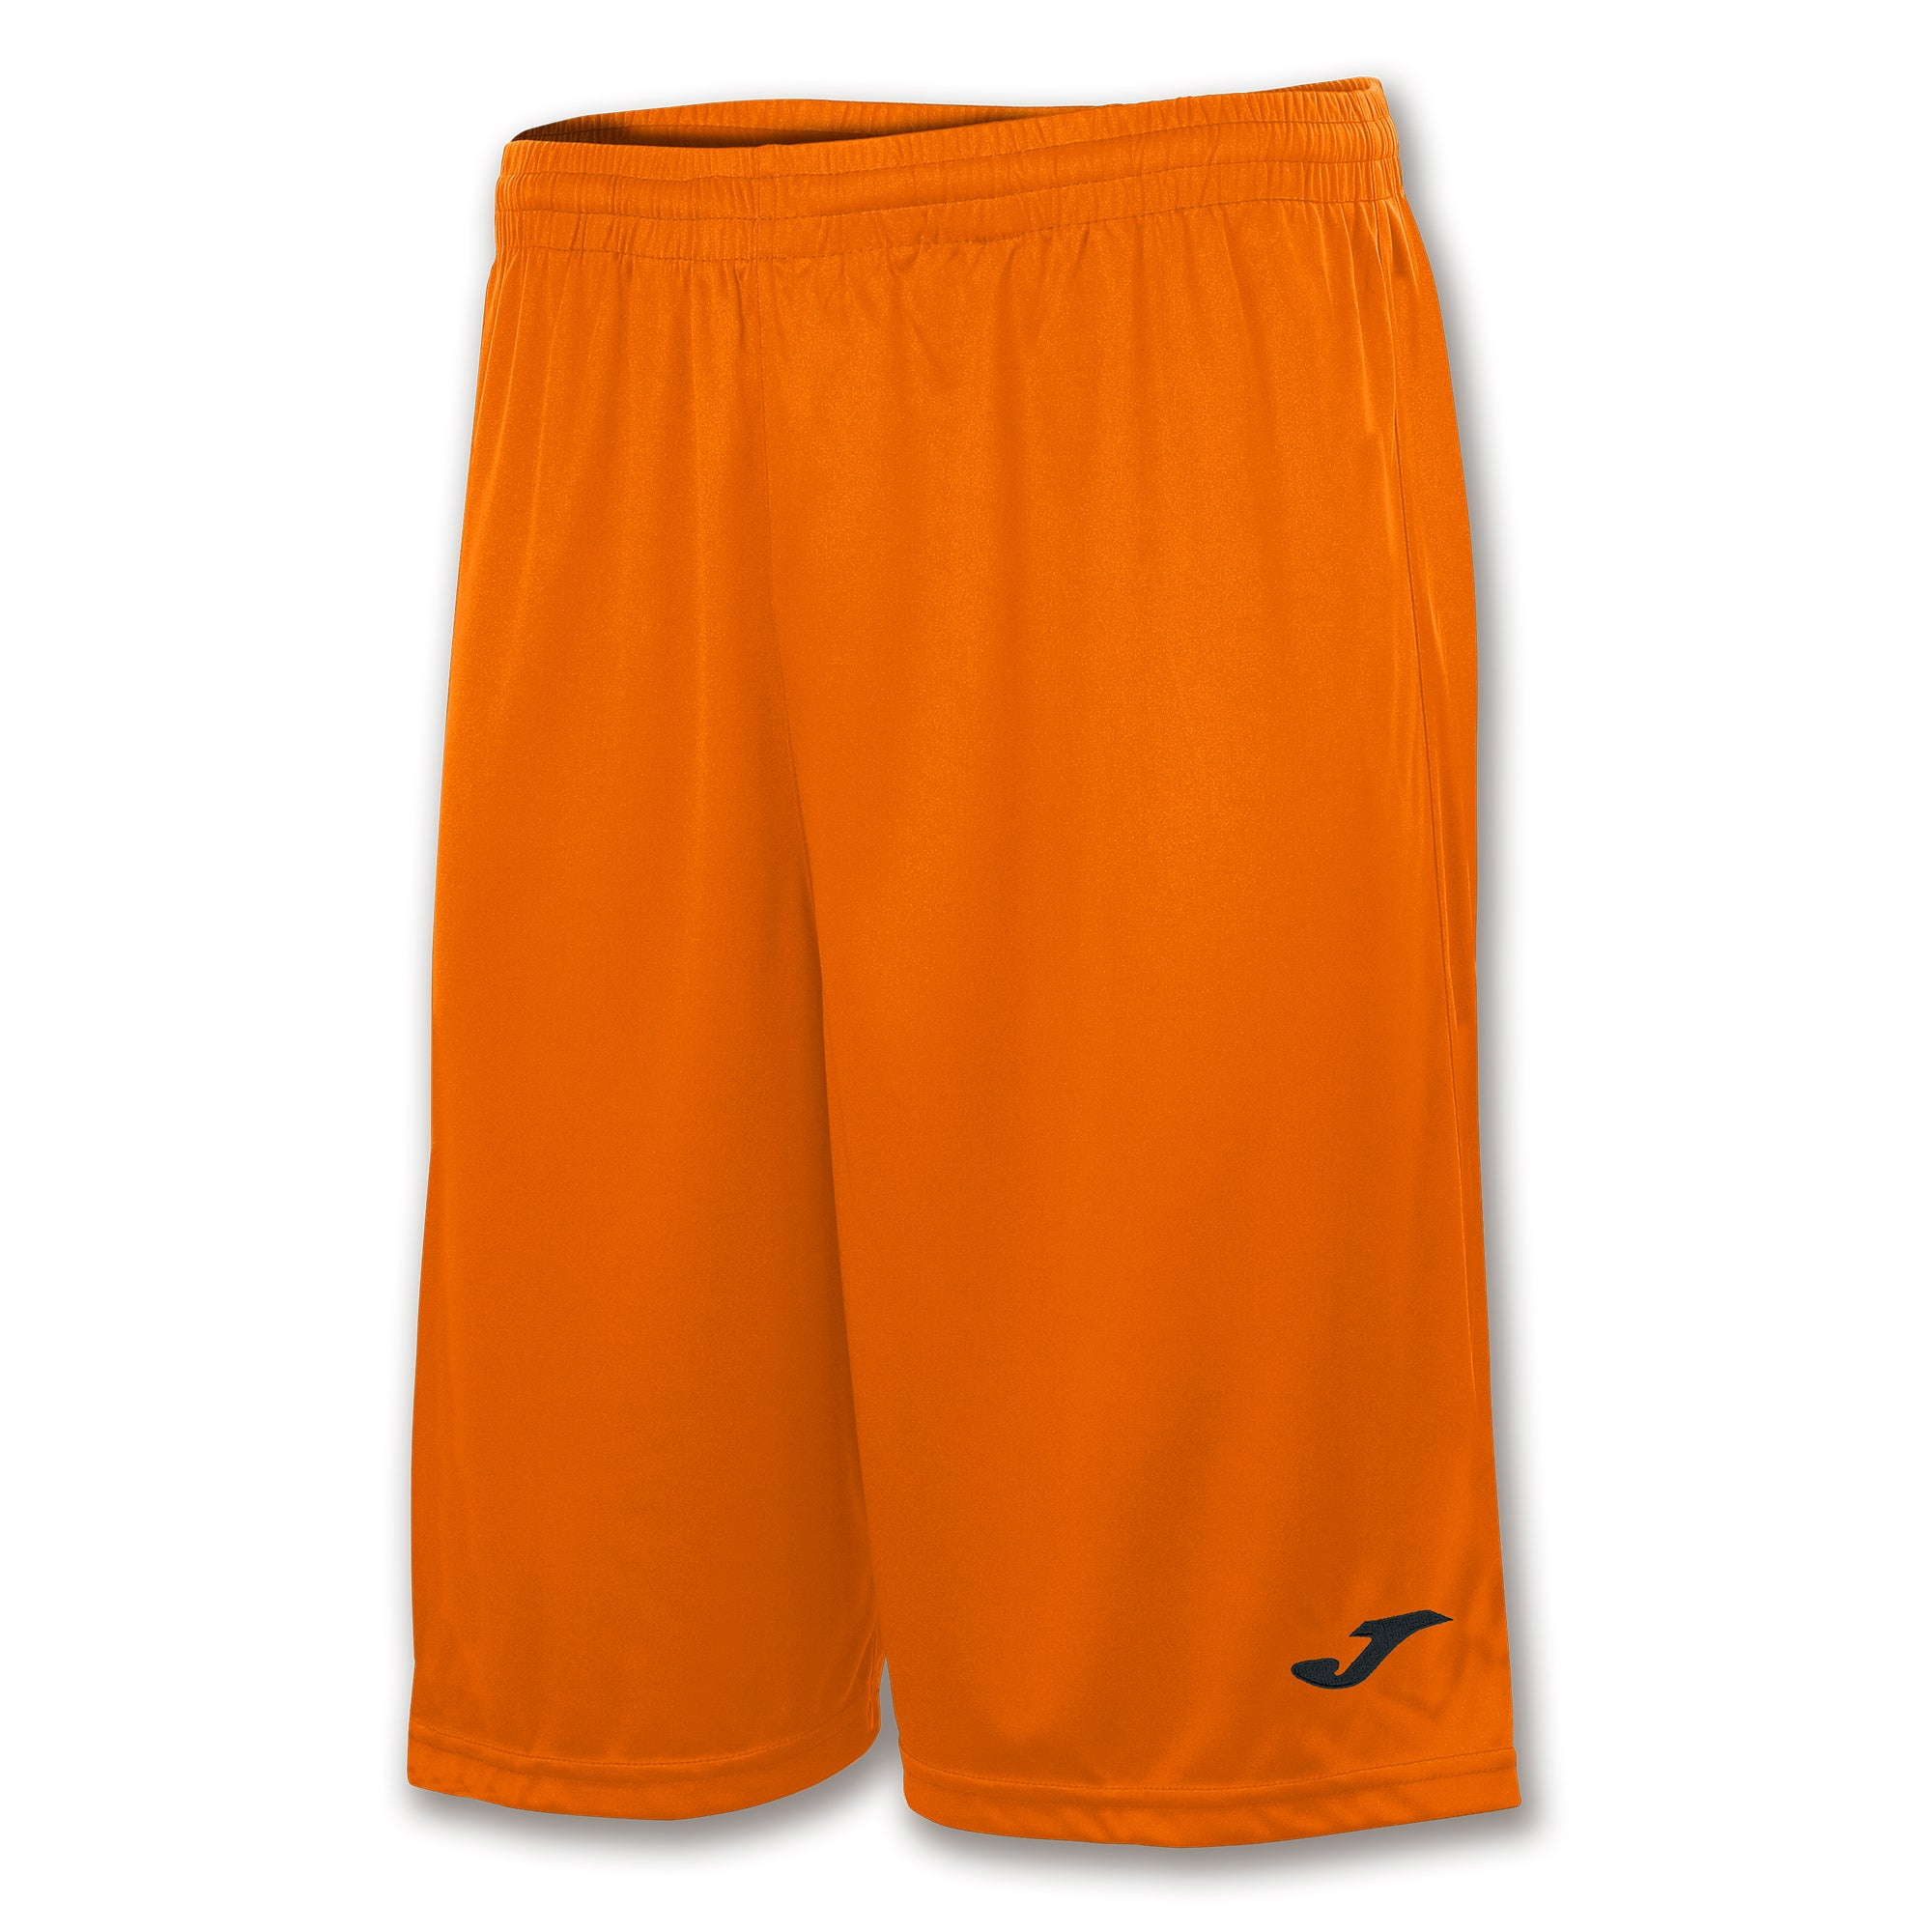 Teamwear - Joma Nobel Long Shorts - Orange - JO-101648-880